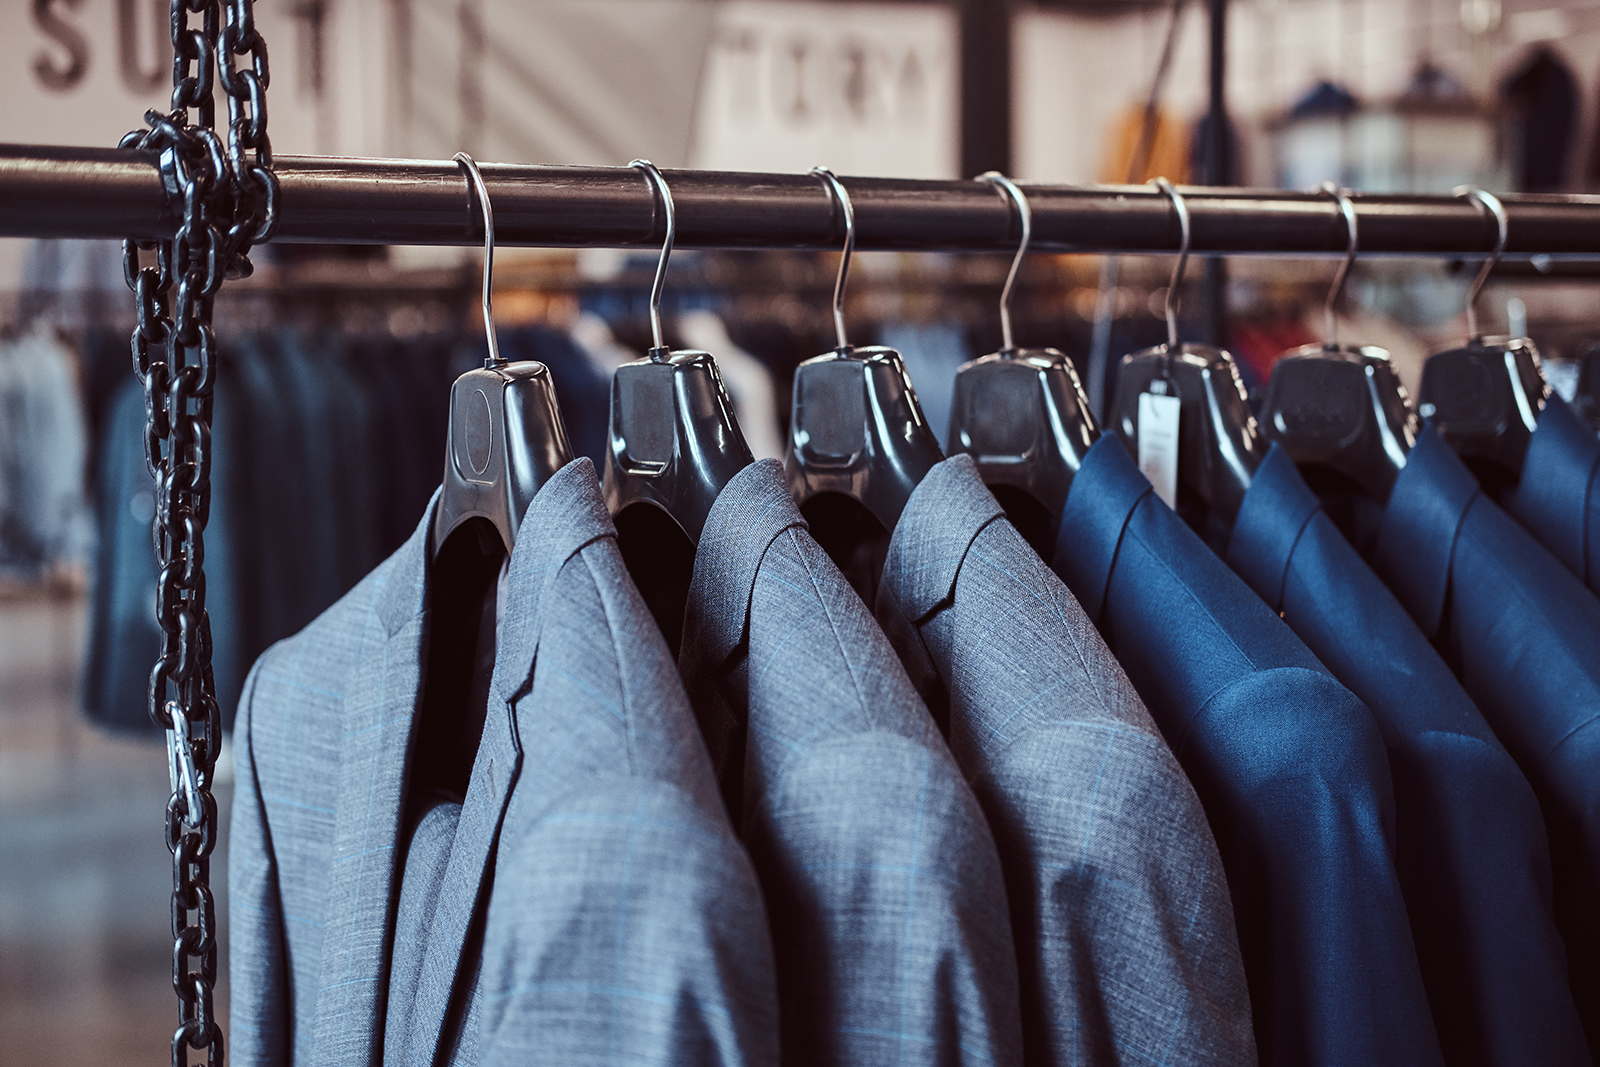 Photo of a rack with suit jackets in menswear store.